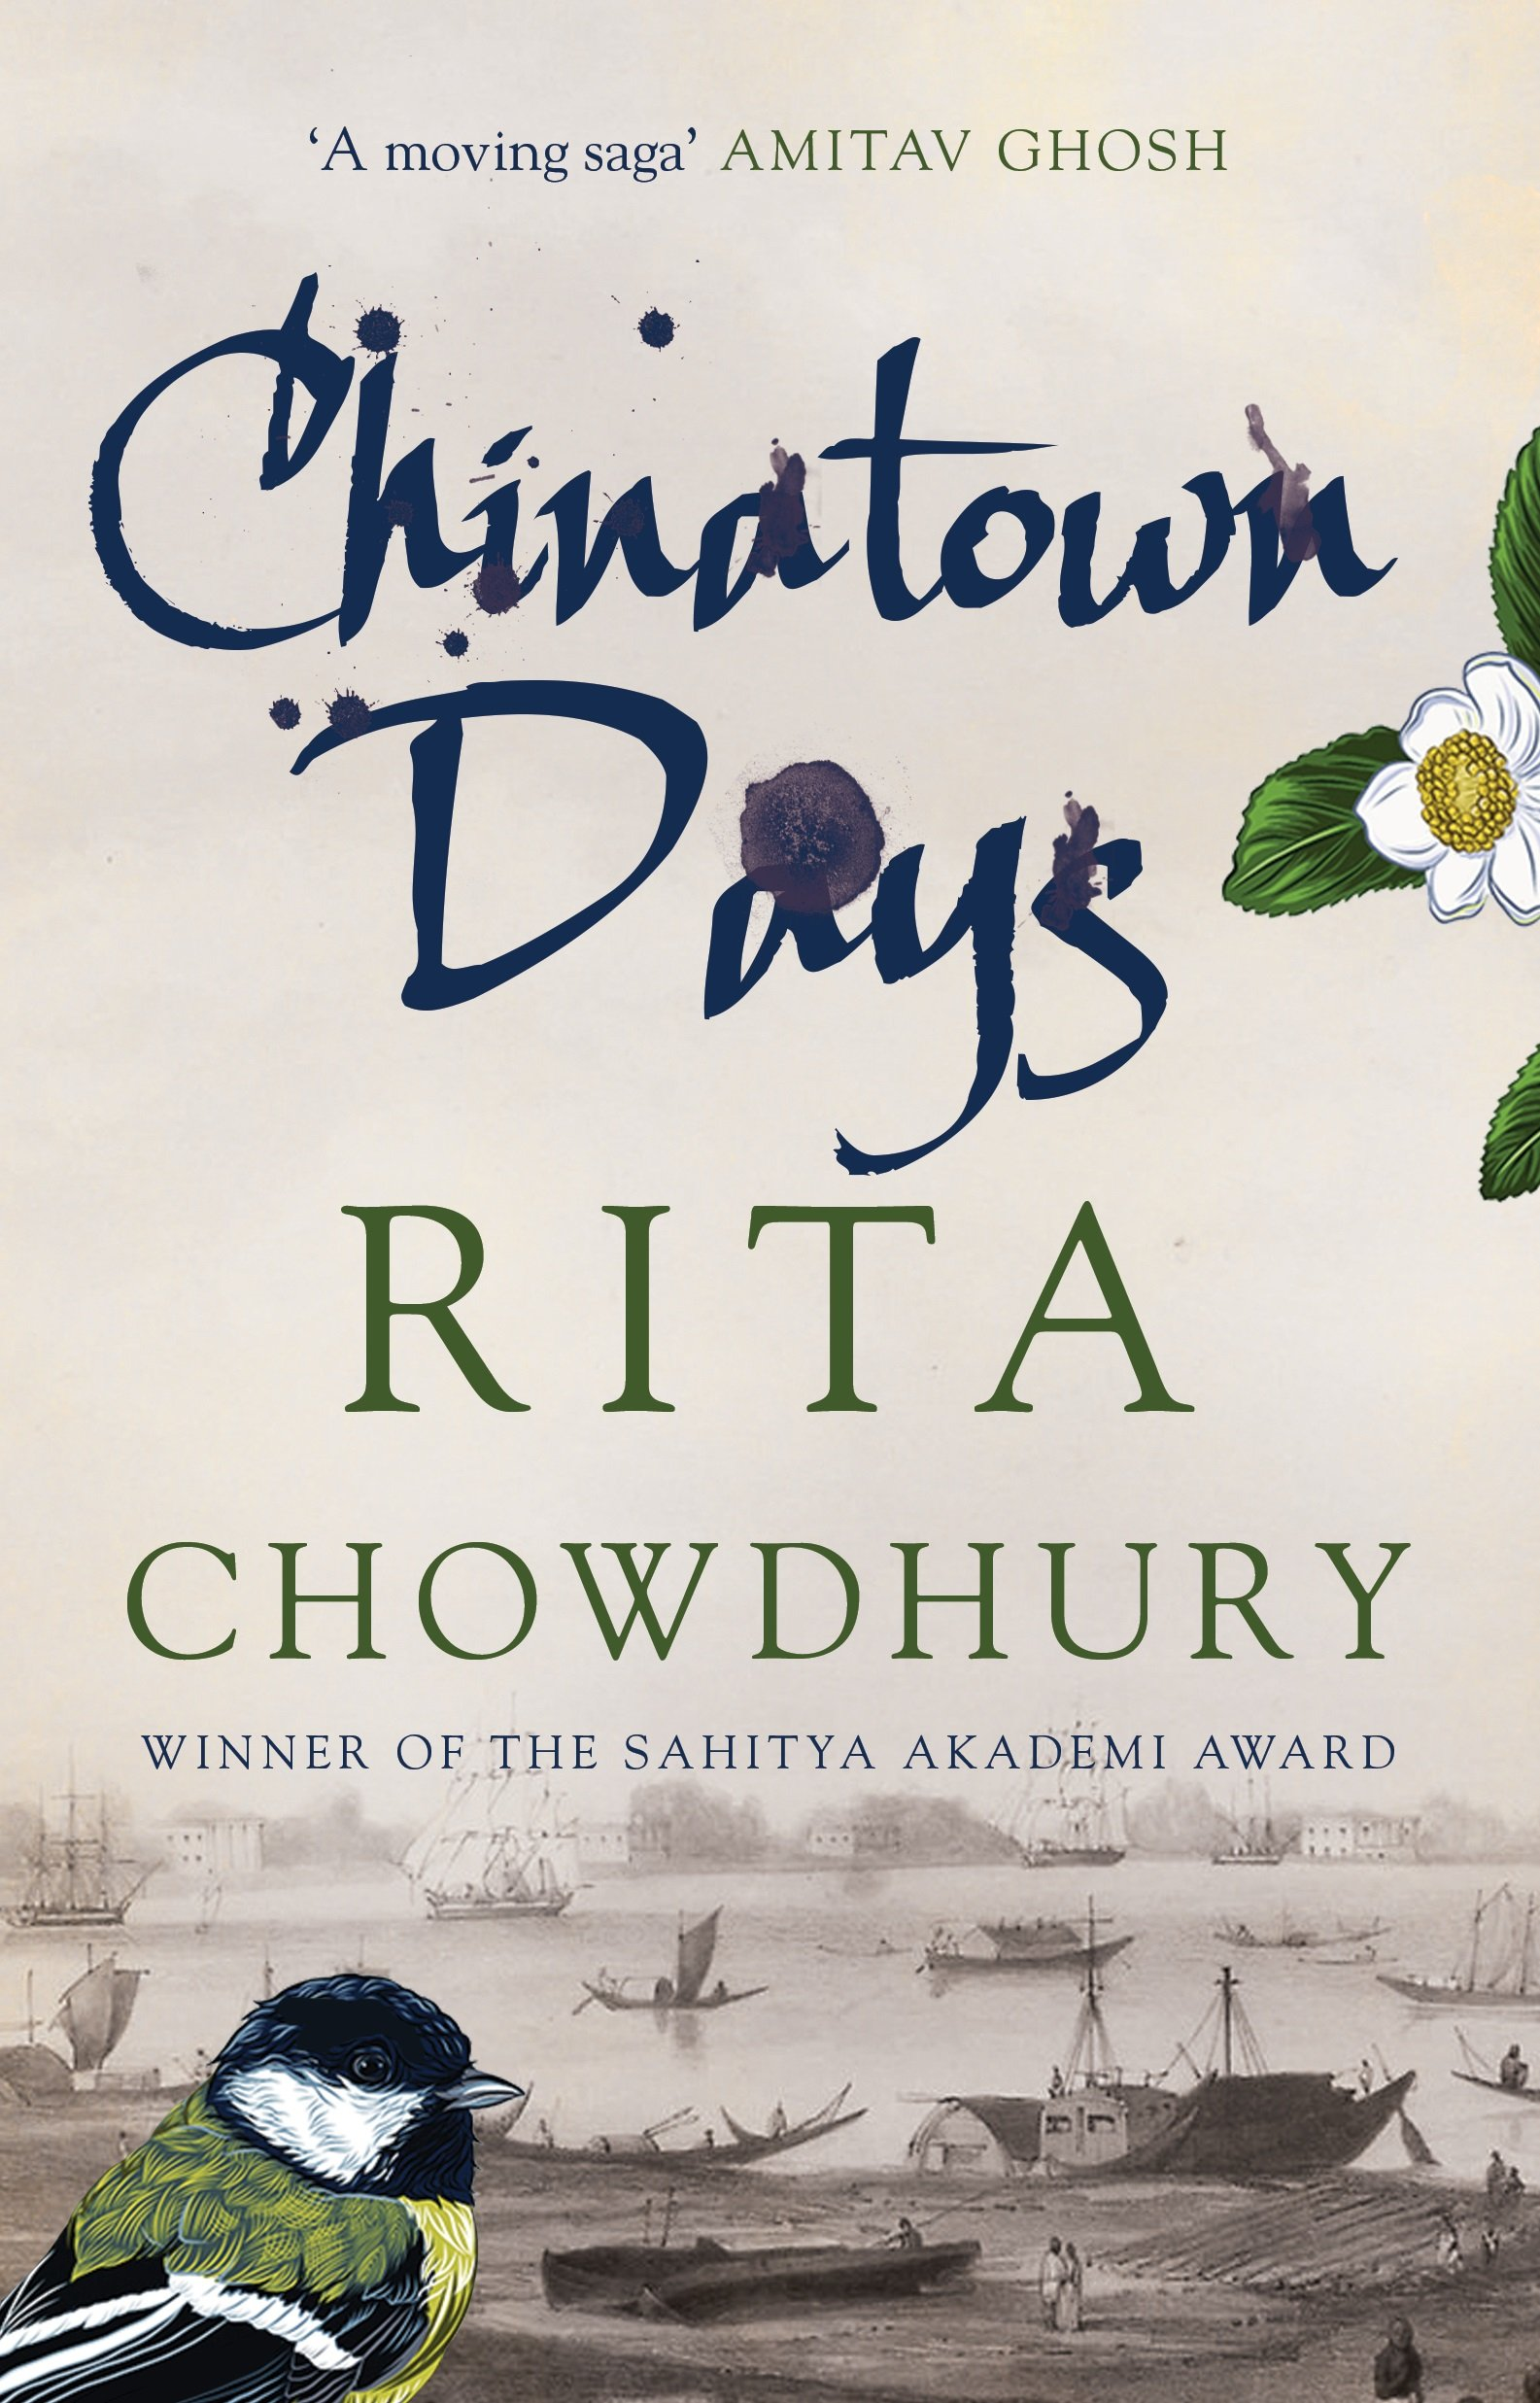 Rita Chowdhury's 'Chinatown Days' is the untold tragic